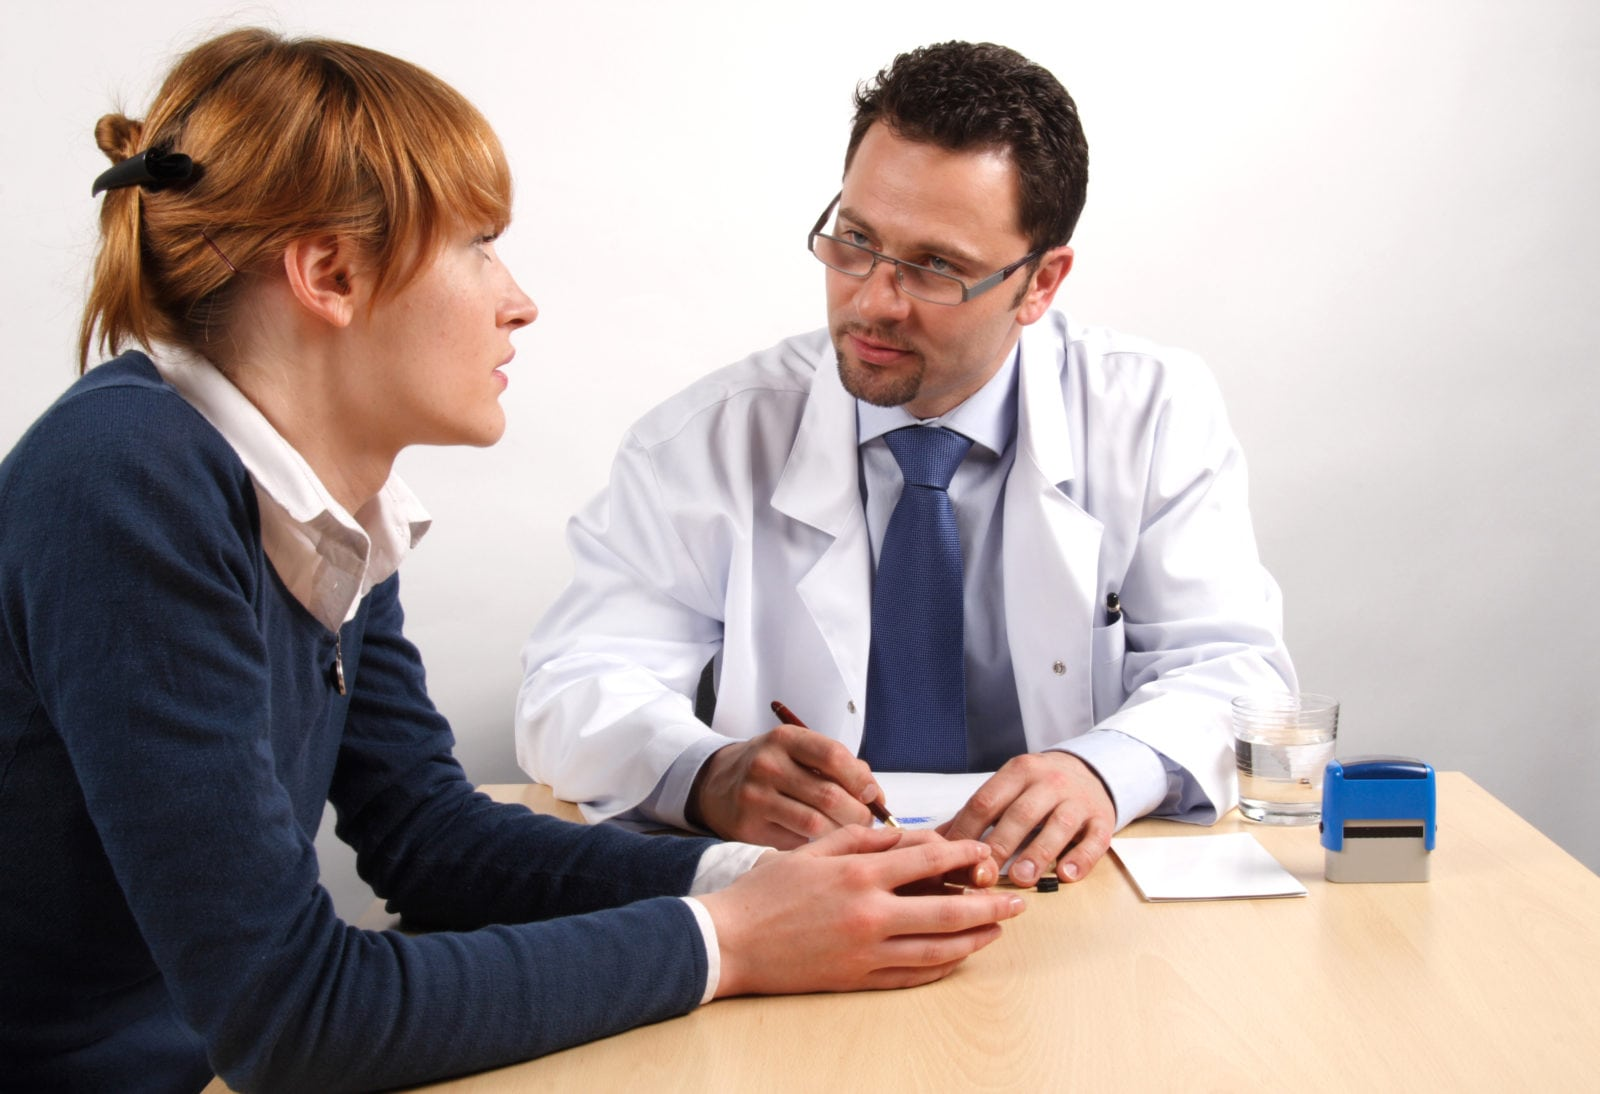 Patient speaking to a doctor about the Early Signs and Symptoms of Cancer